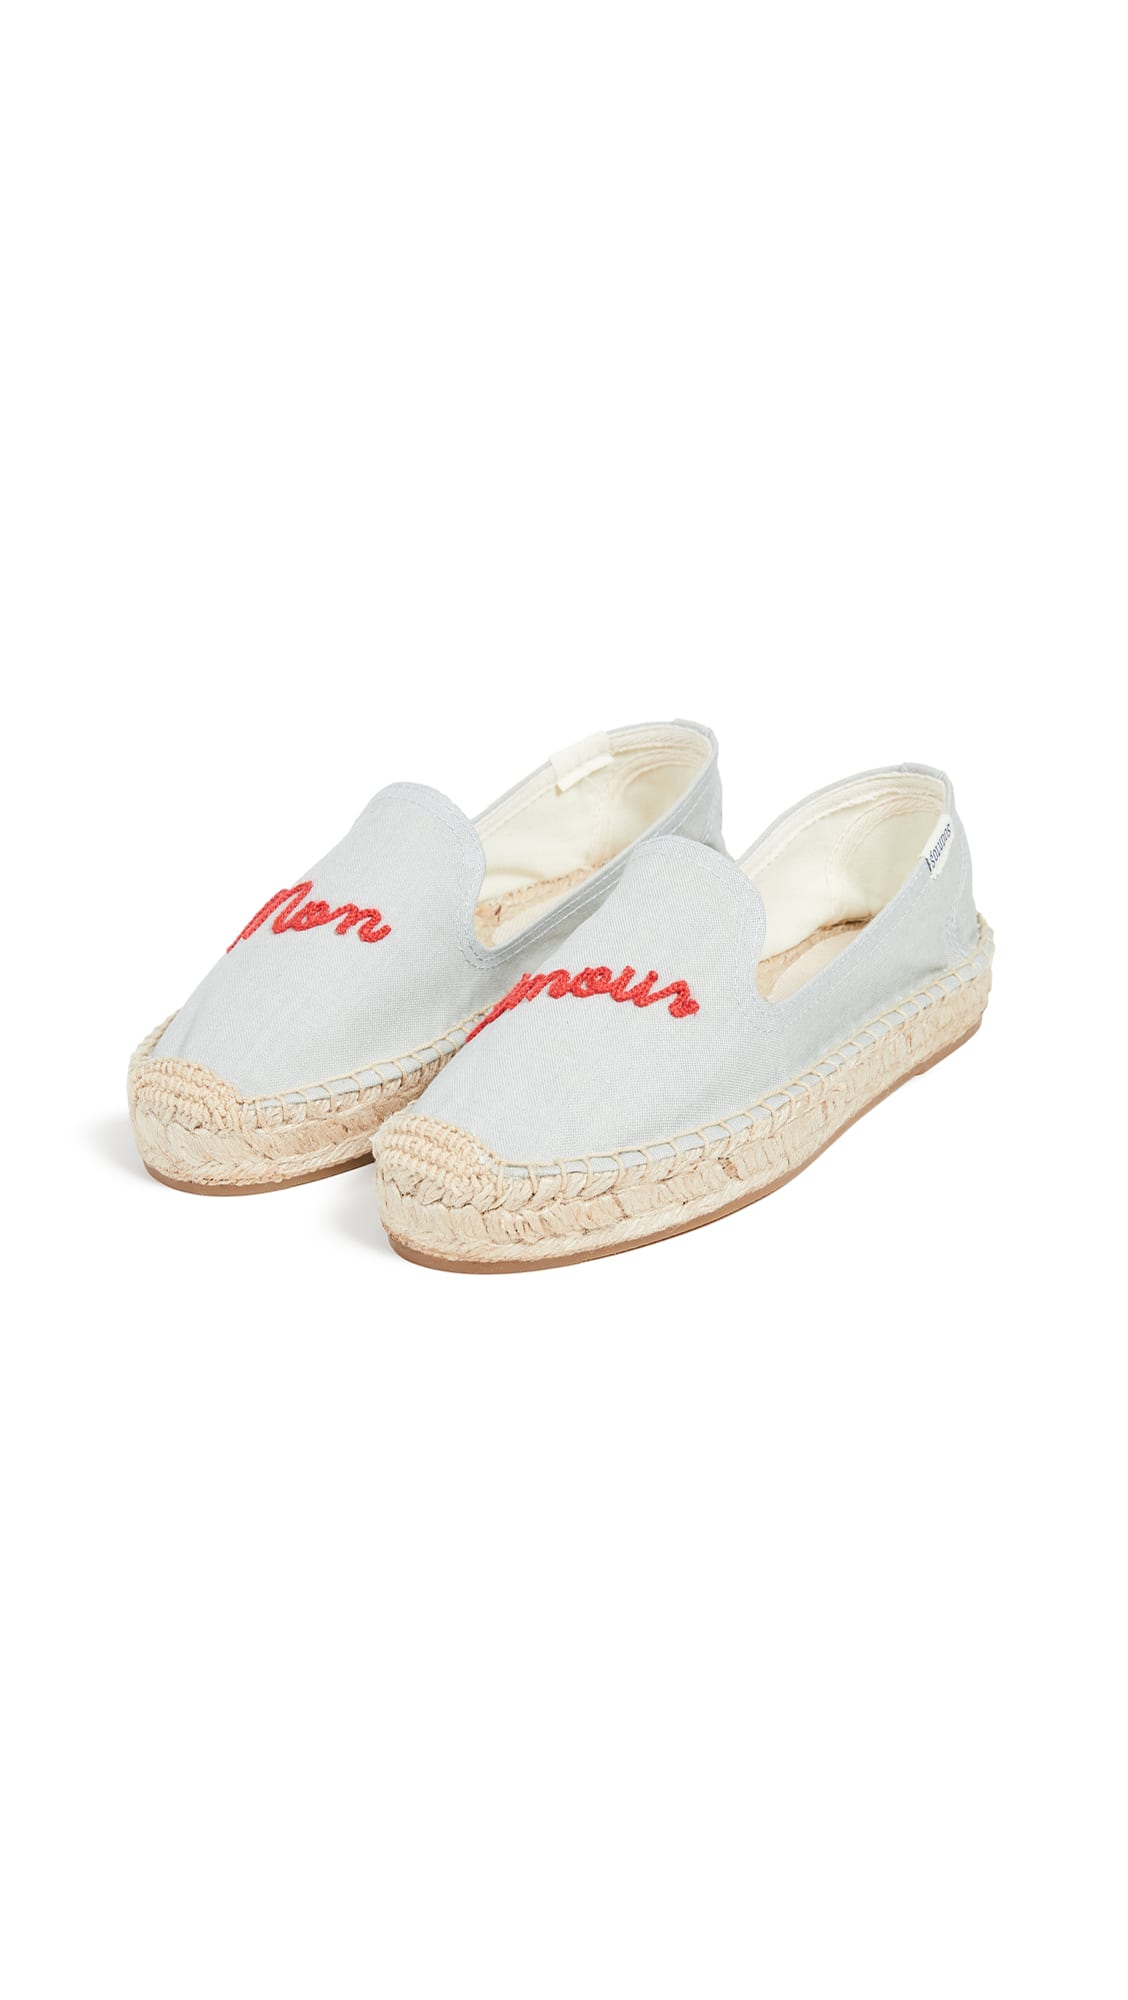 shopbop Soludos Mon Amour Smoking Slippers